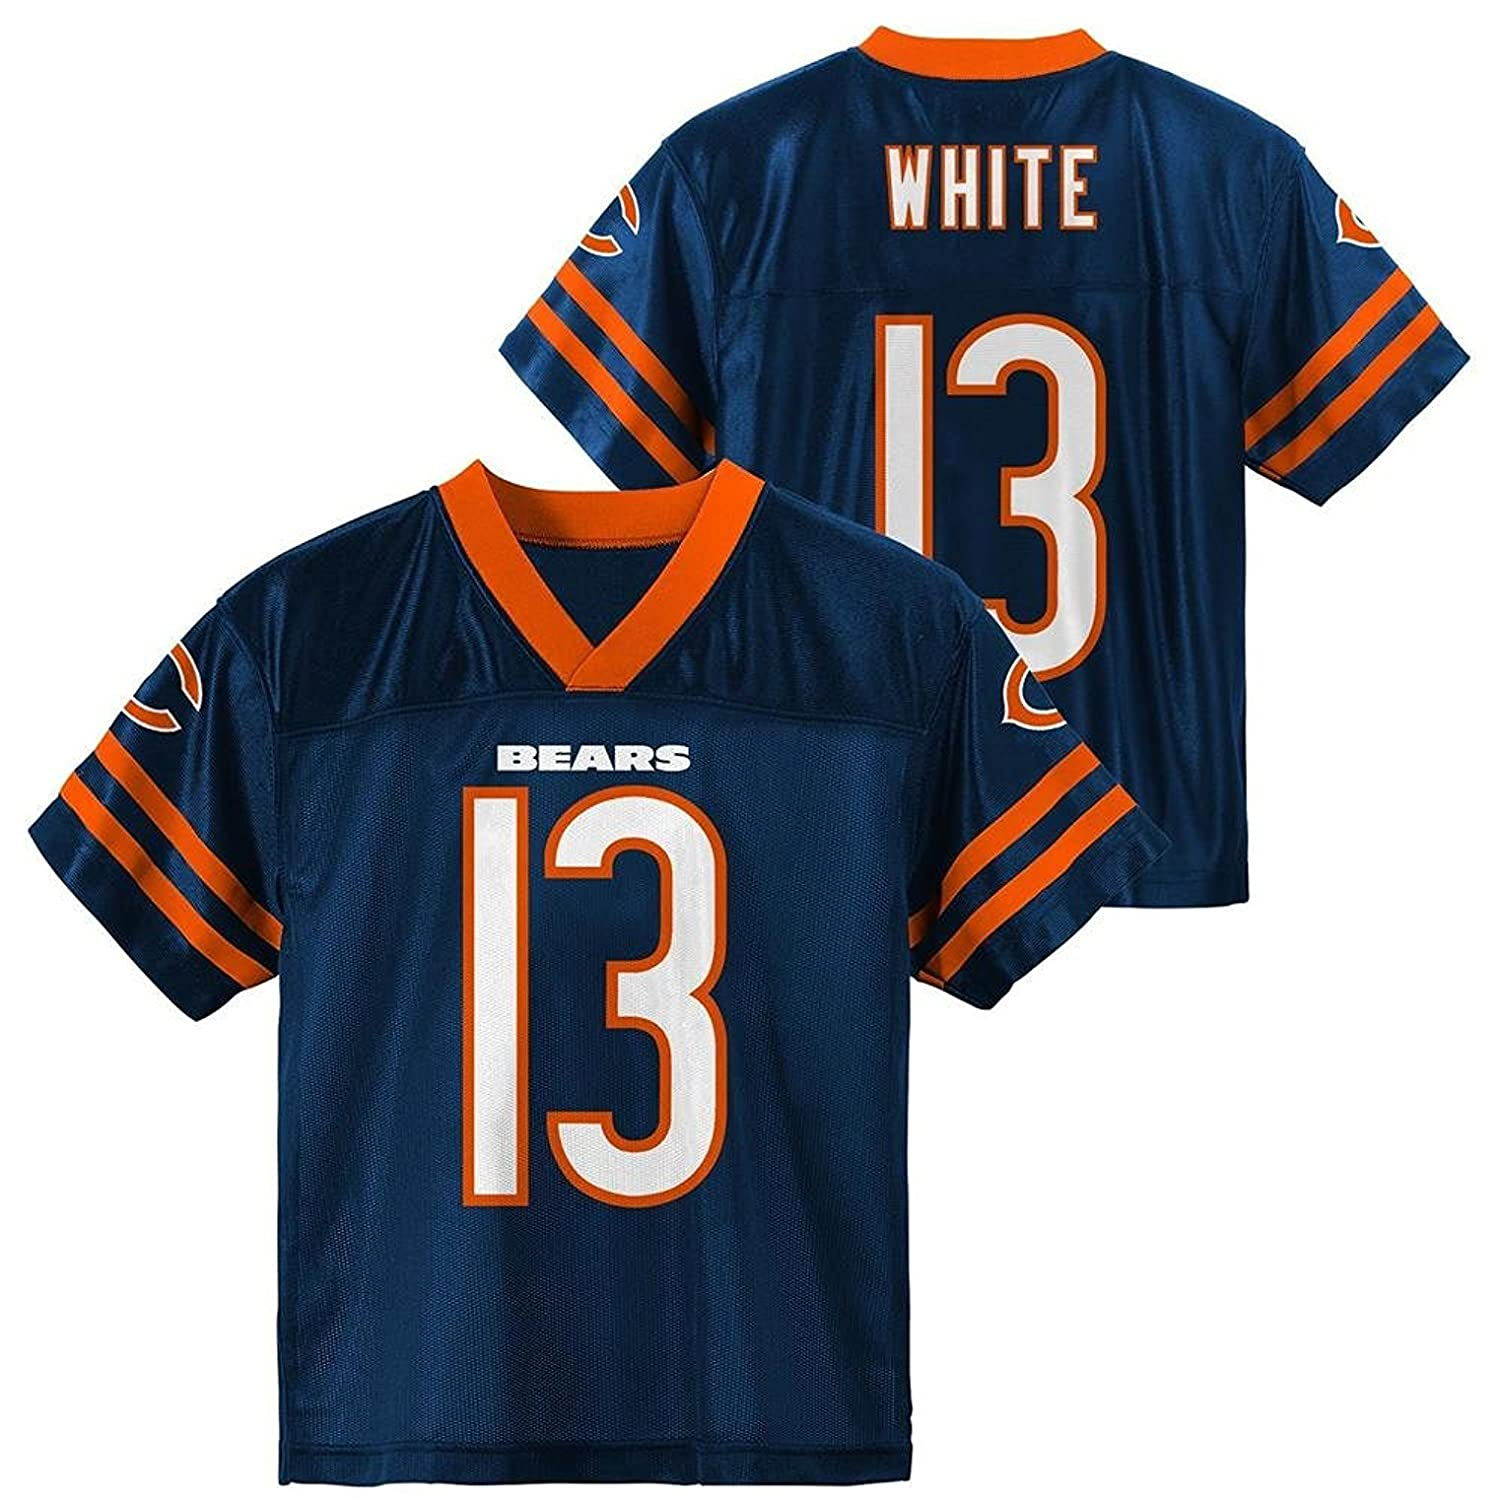 126f91c9bff82 ... discount code for outerstuff kevin white chicago bears kids navy blue  home player jersey 7d41a 5698f ...